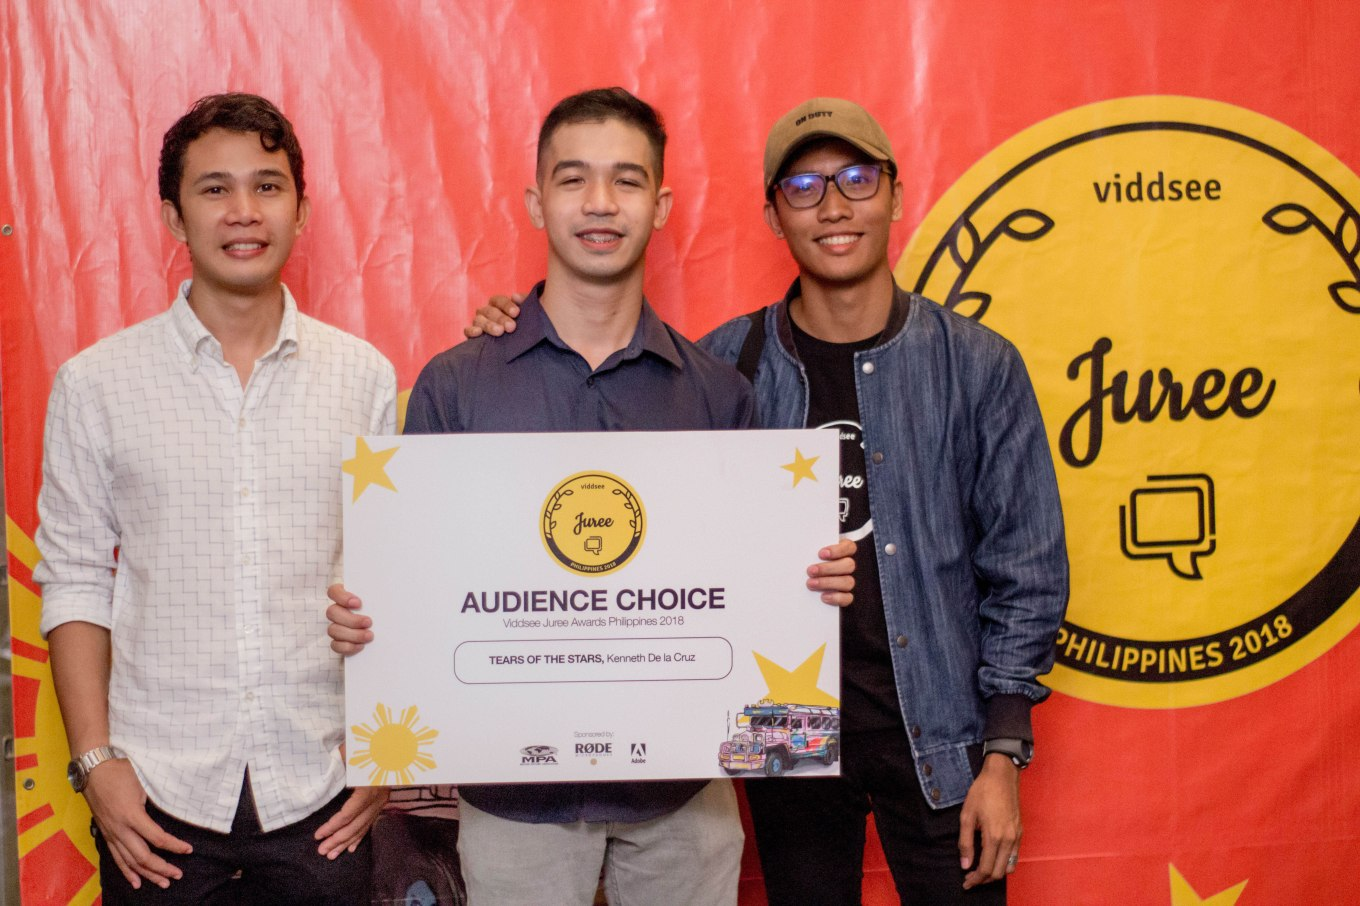 Audience Choice winner (Kenneth dela Cruz with his actor and cinematographer)